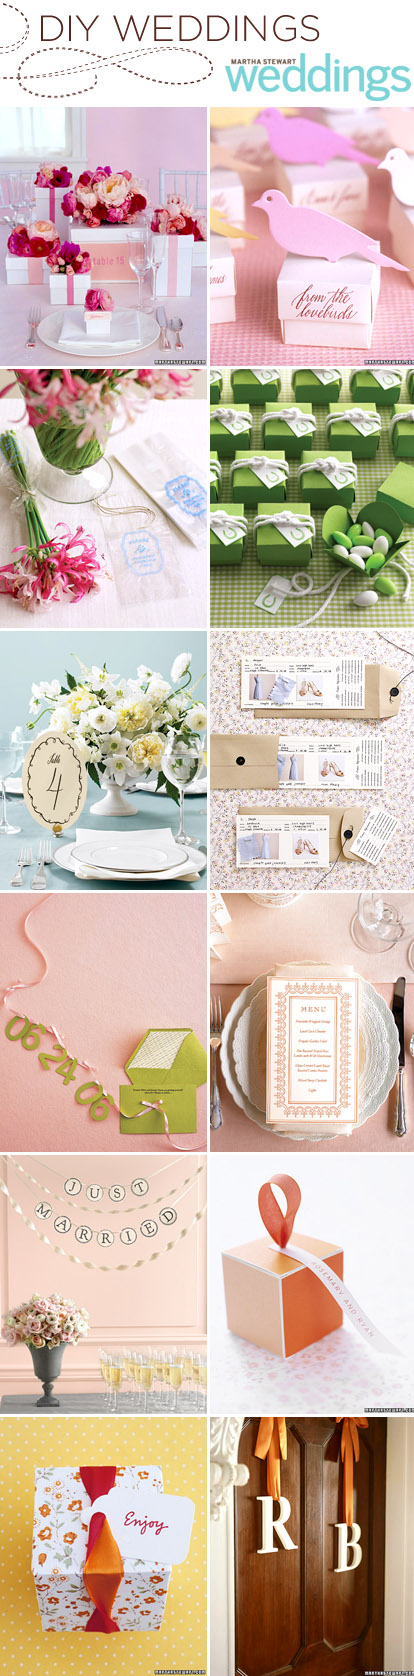 wedding DIY projects from Martha Stewart Weddings